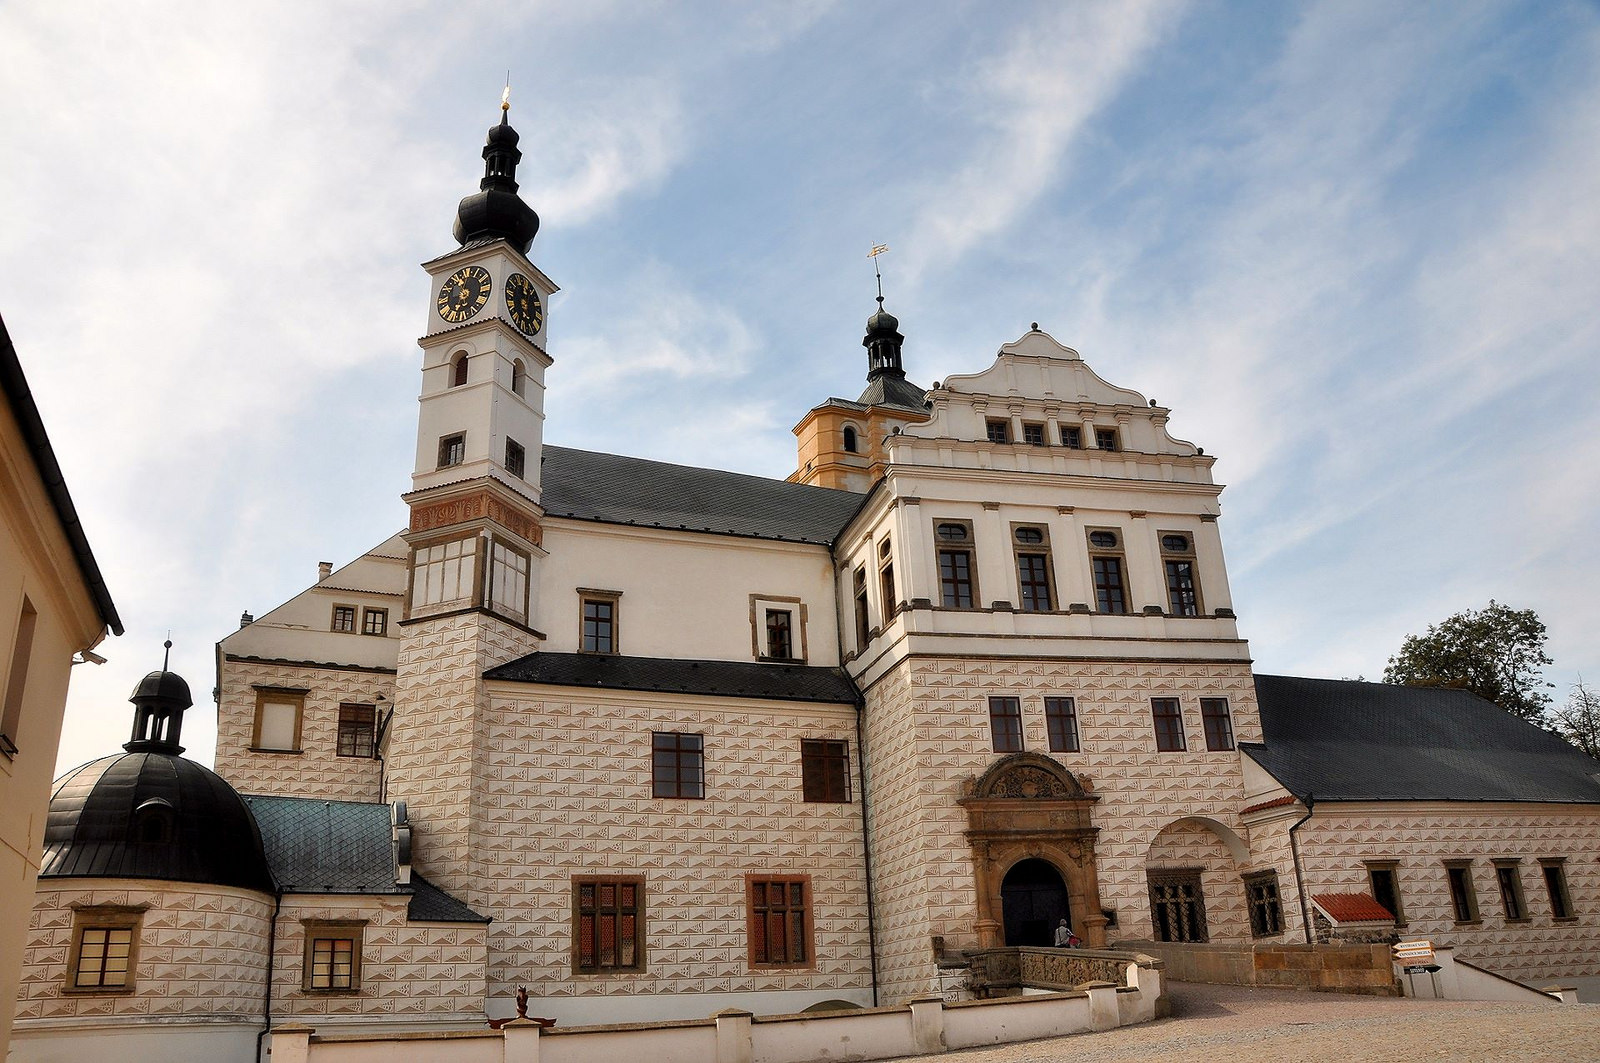 Pardubice Chateau, Best Places To Visit in the Czech Republic